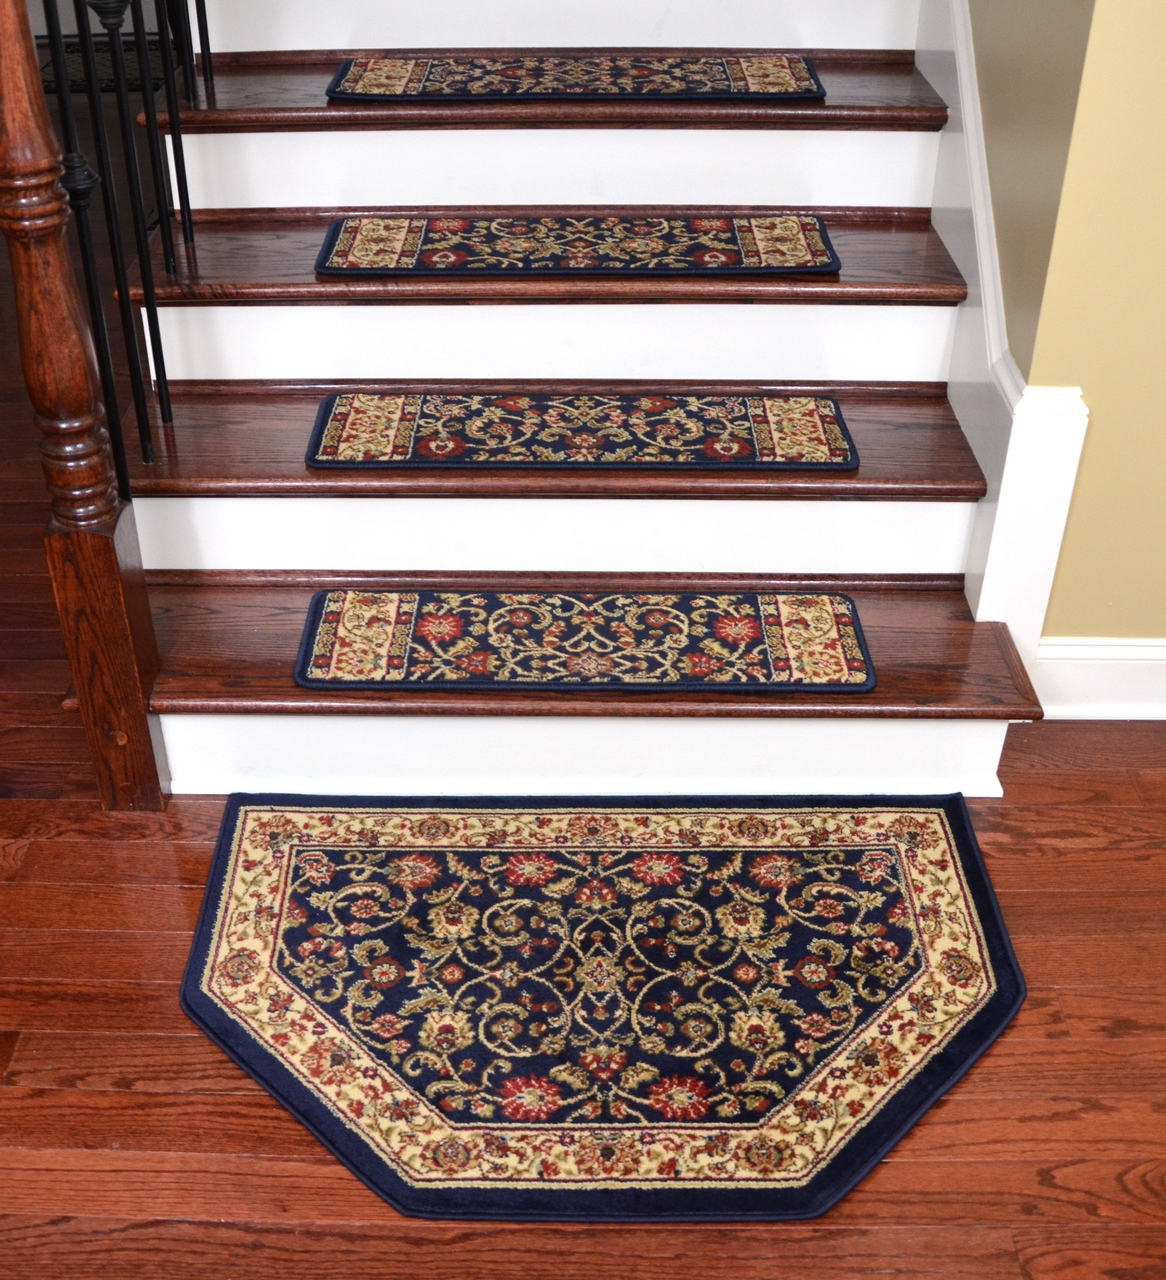 Flooring Pretty Stair Treads Carpet For Stair Decoration Idea Throughout Stair Tread Rug Sets (#14 of 20)